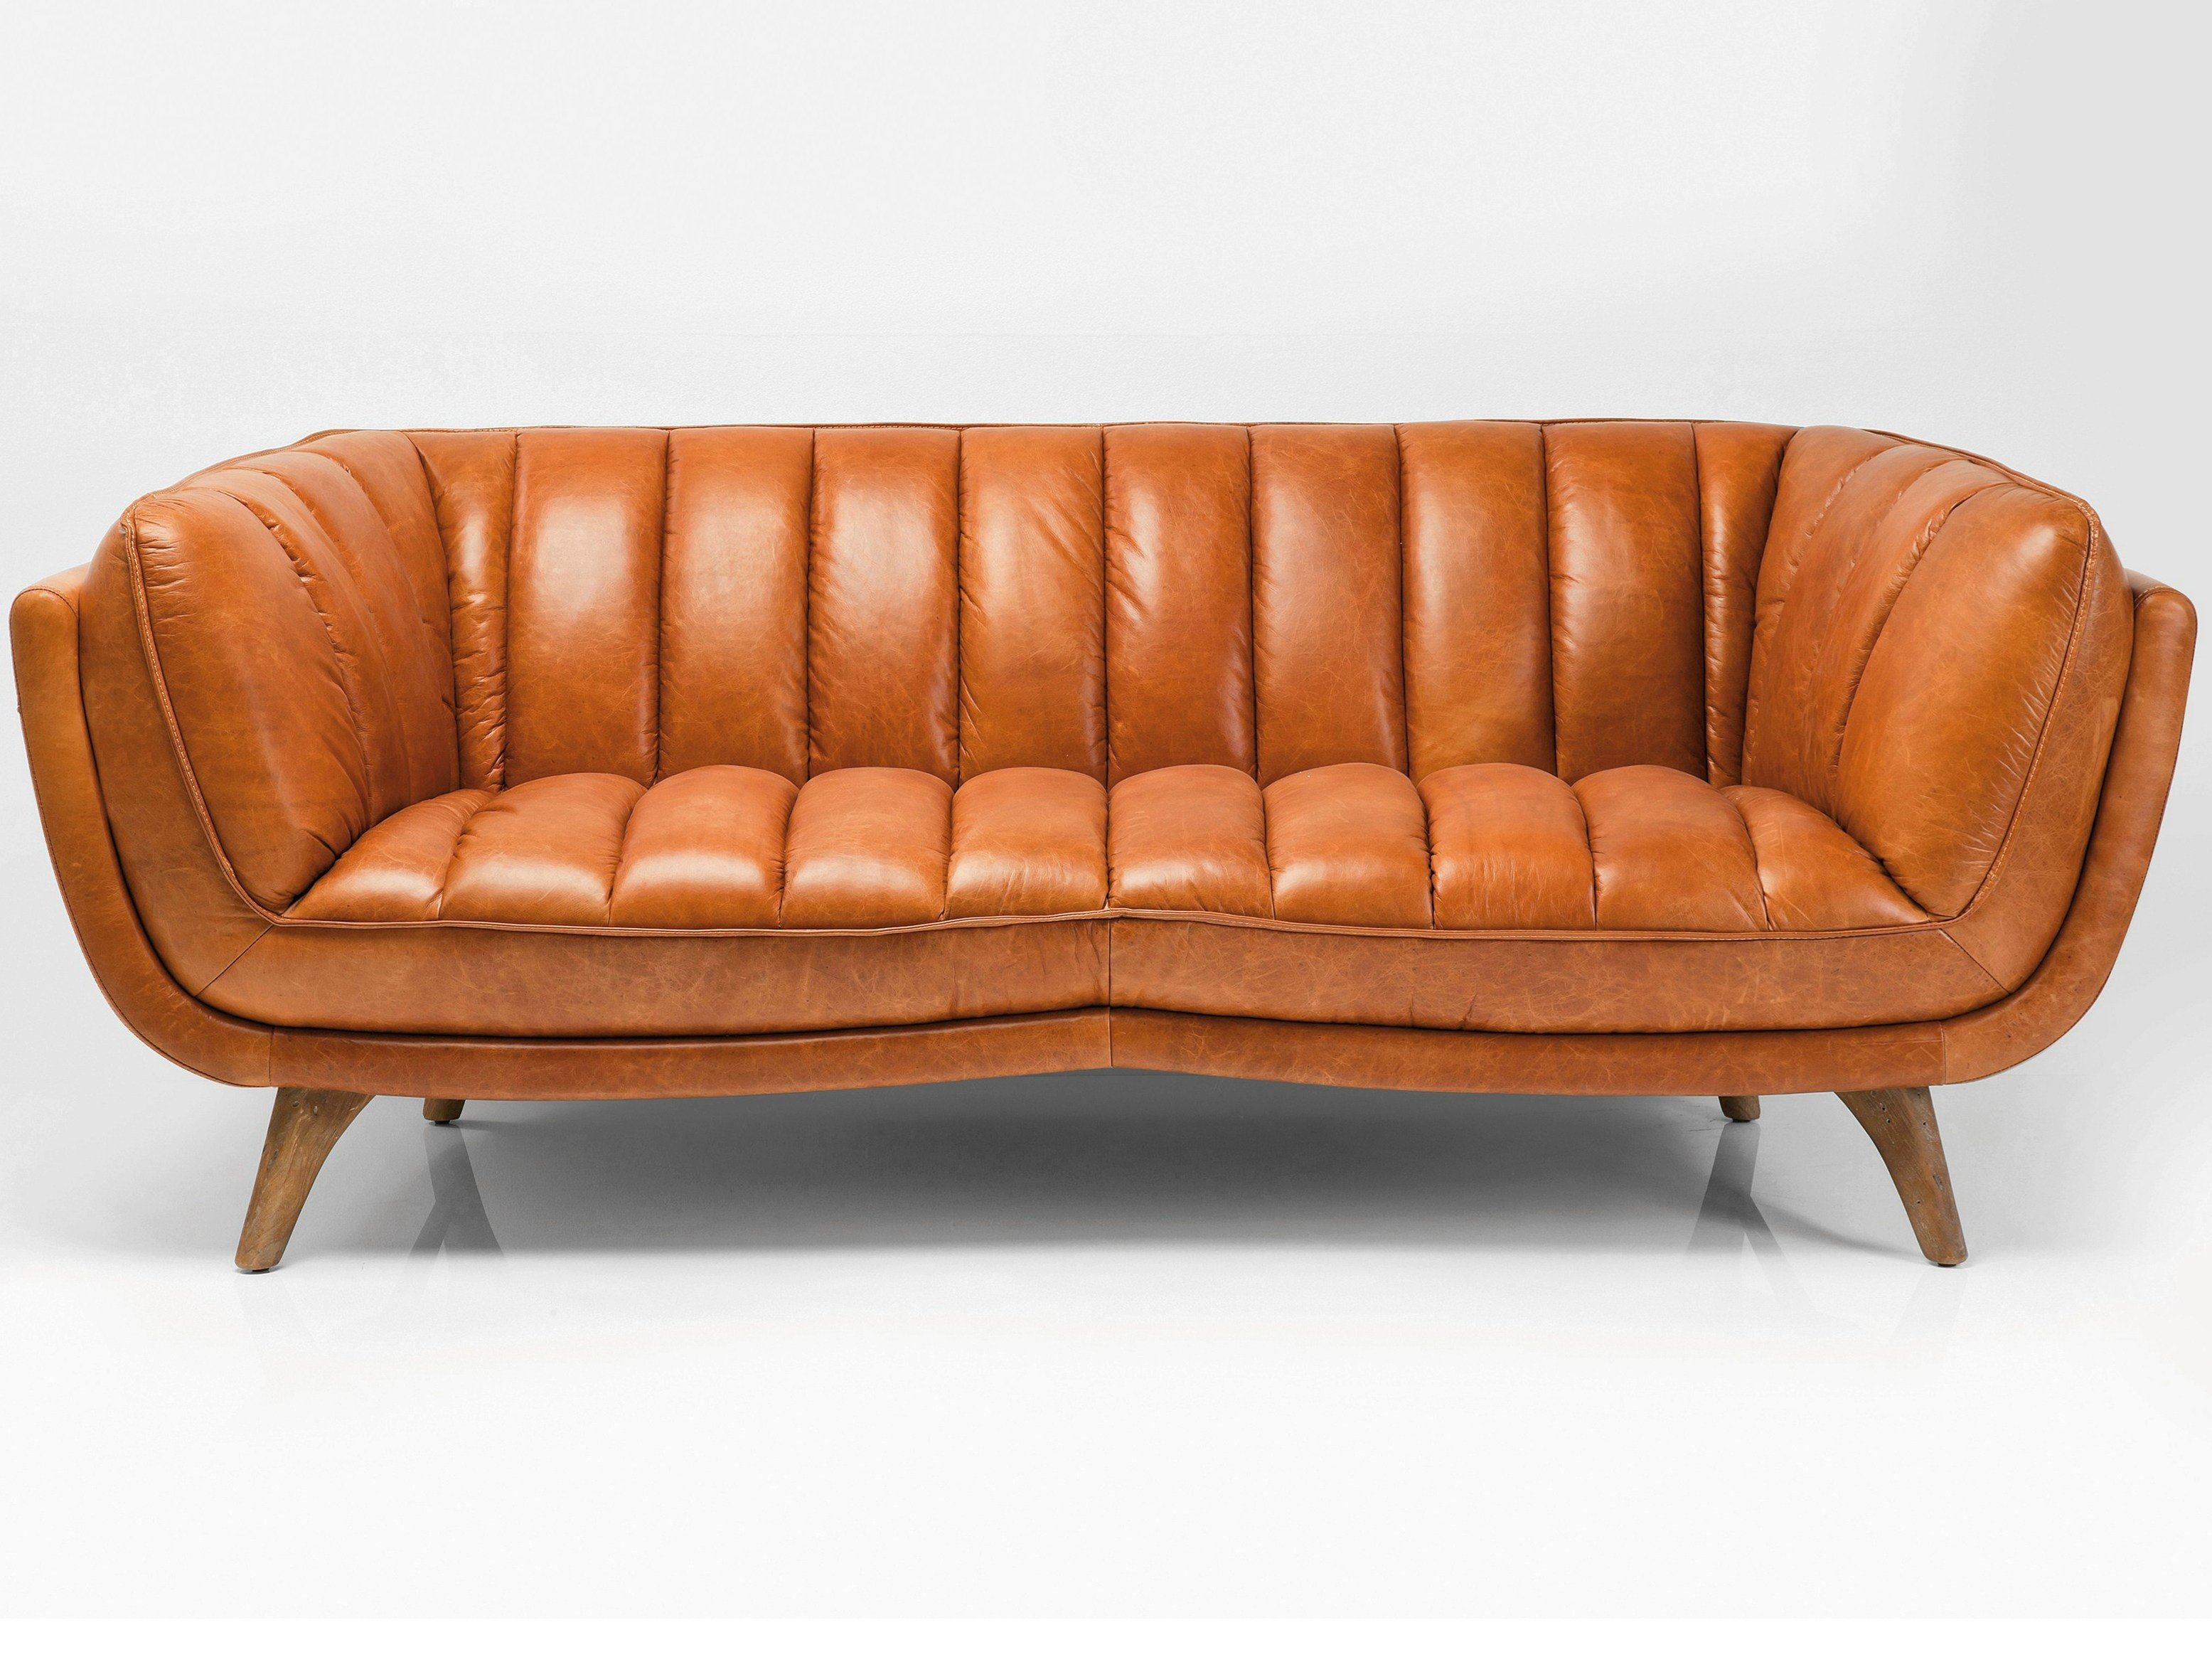 Ledersofa design  EARL | 3 seater sofa By Jess Design